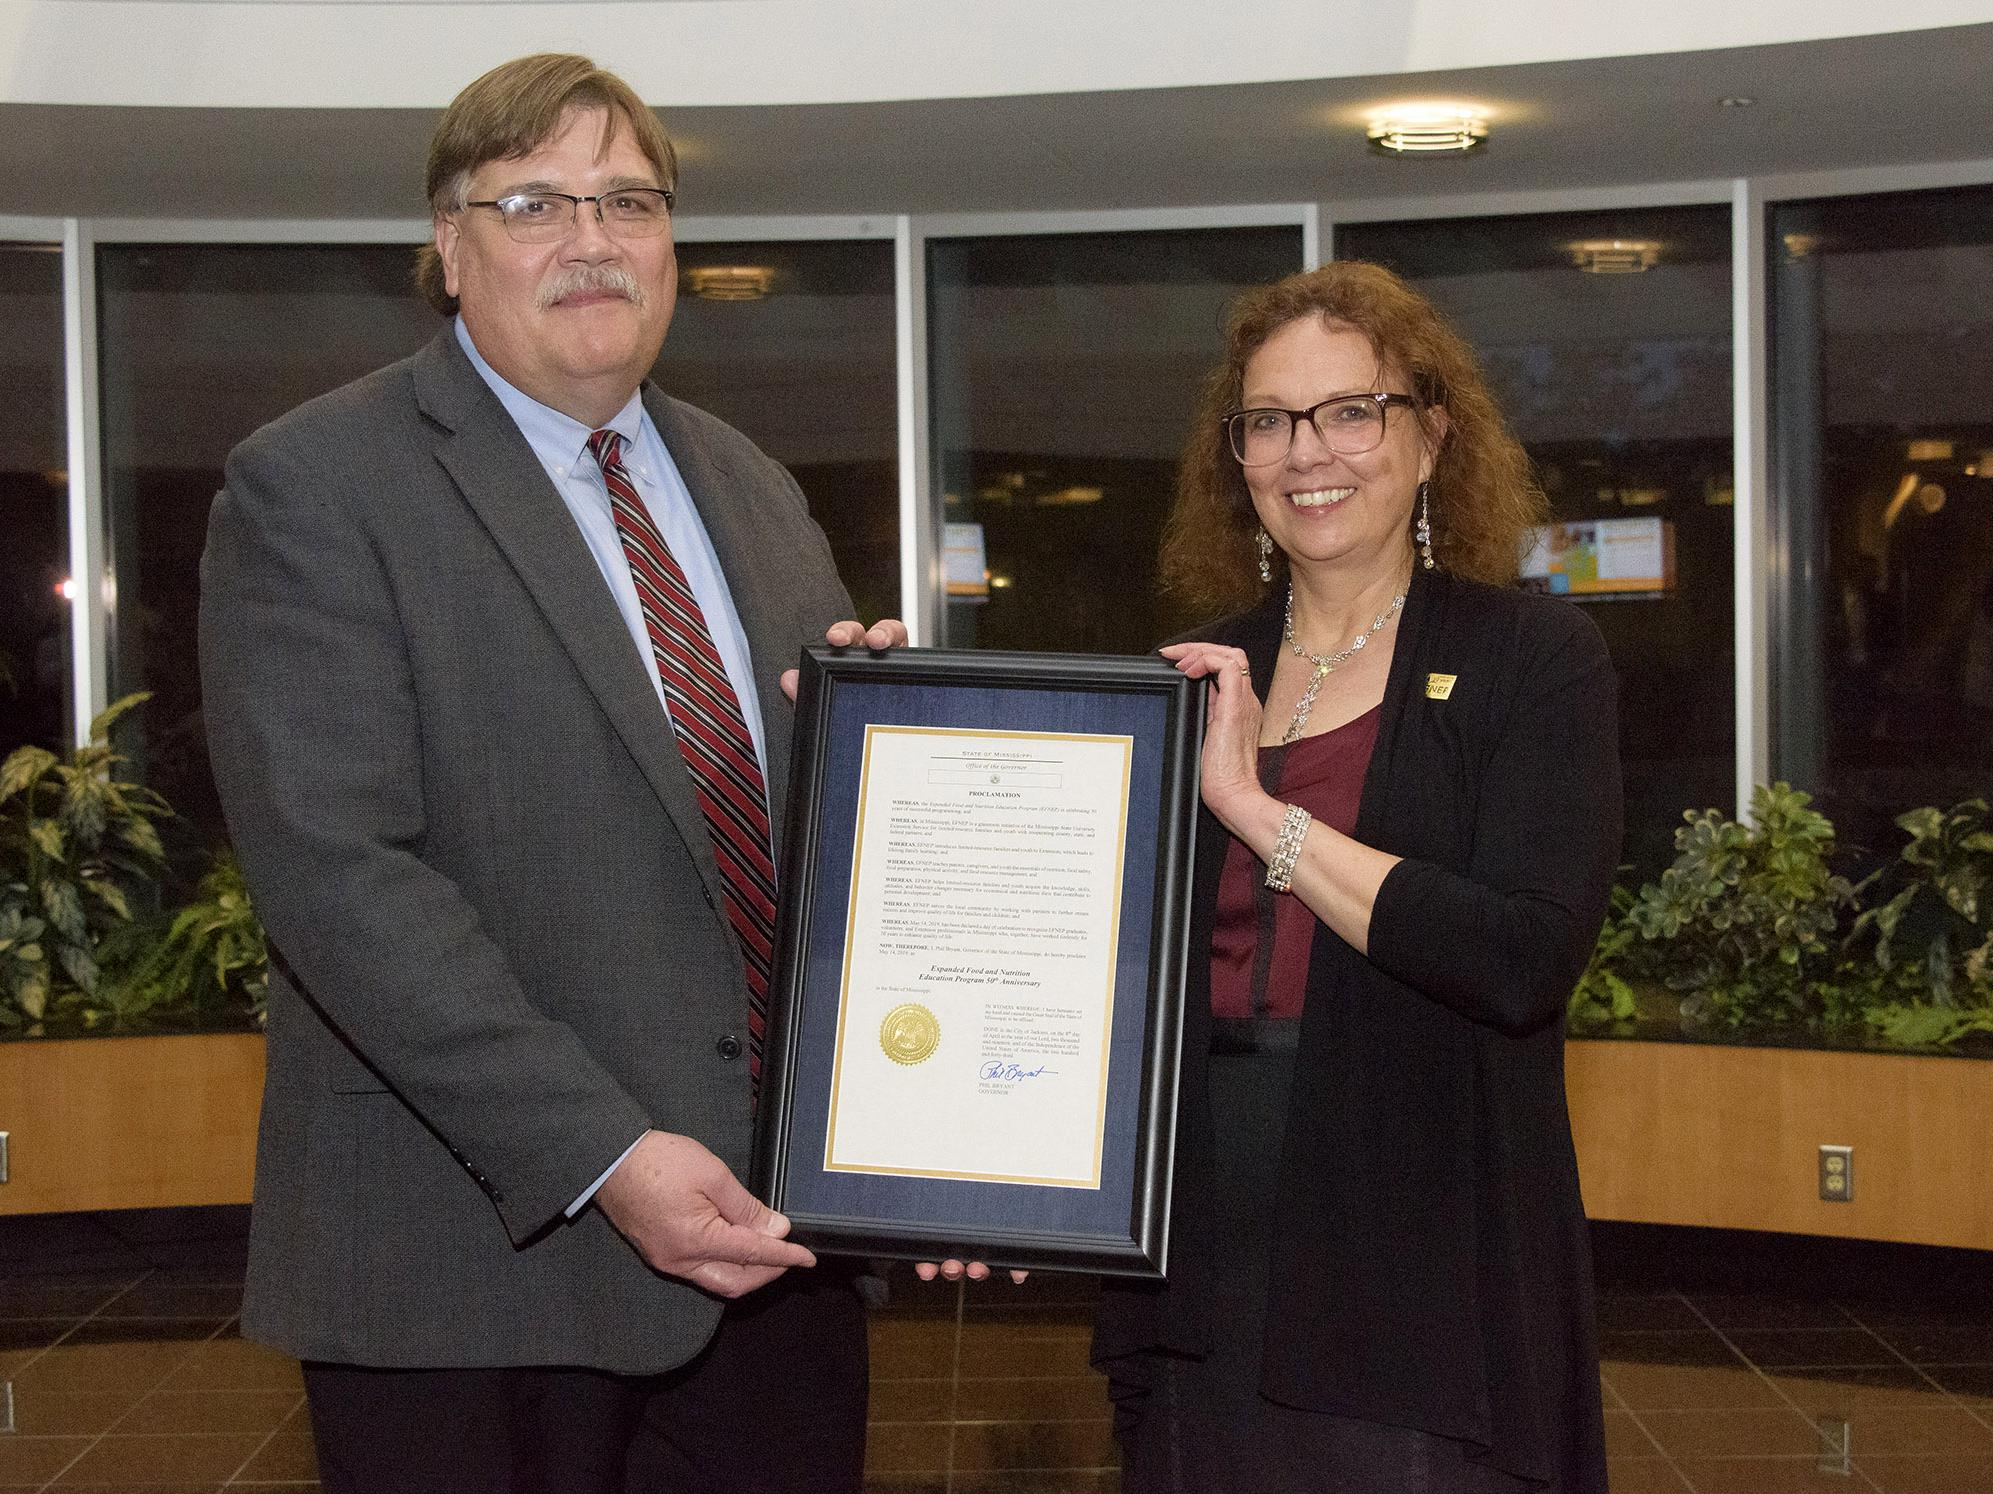 A man on the left and a woman on the right stand in an atrium and hold a framed document with a gold seal.